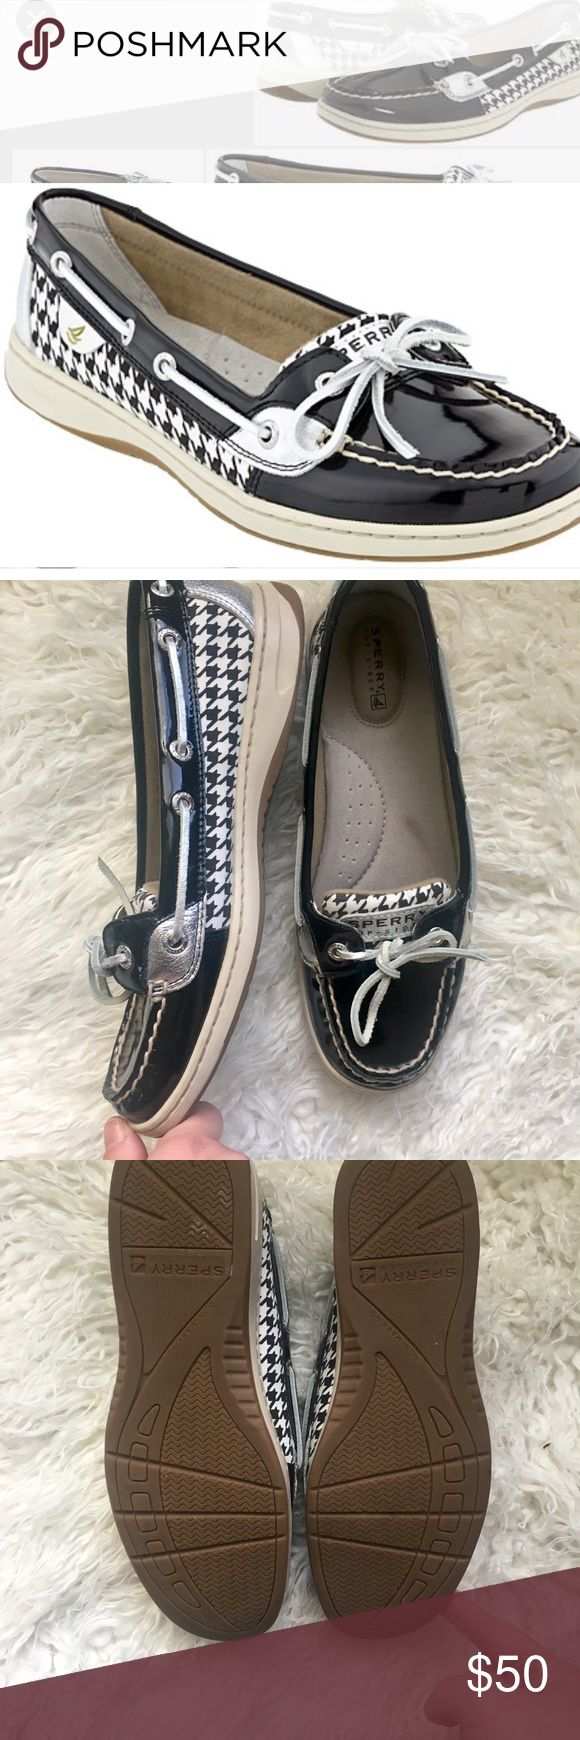 Sperry top side houndstooth leather boat shoes Great condition, no flaws. Patent leather, houndstooth and silver leather make these a must have pair of boat shoes. Slip on, flats, loafers. Add this to a bundle to save 15%. Sperry Top-Sider Shoes Flats & Loafers